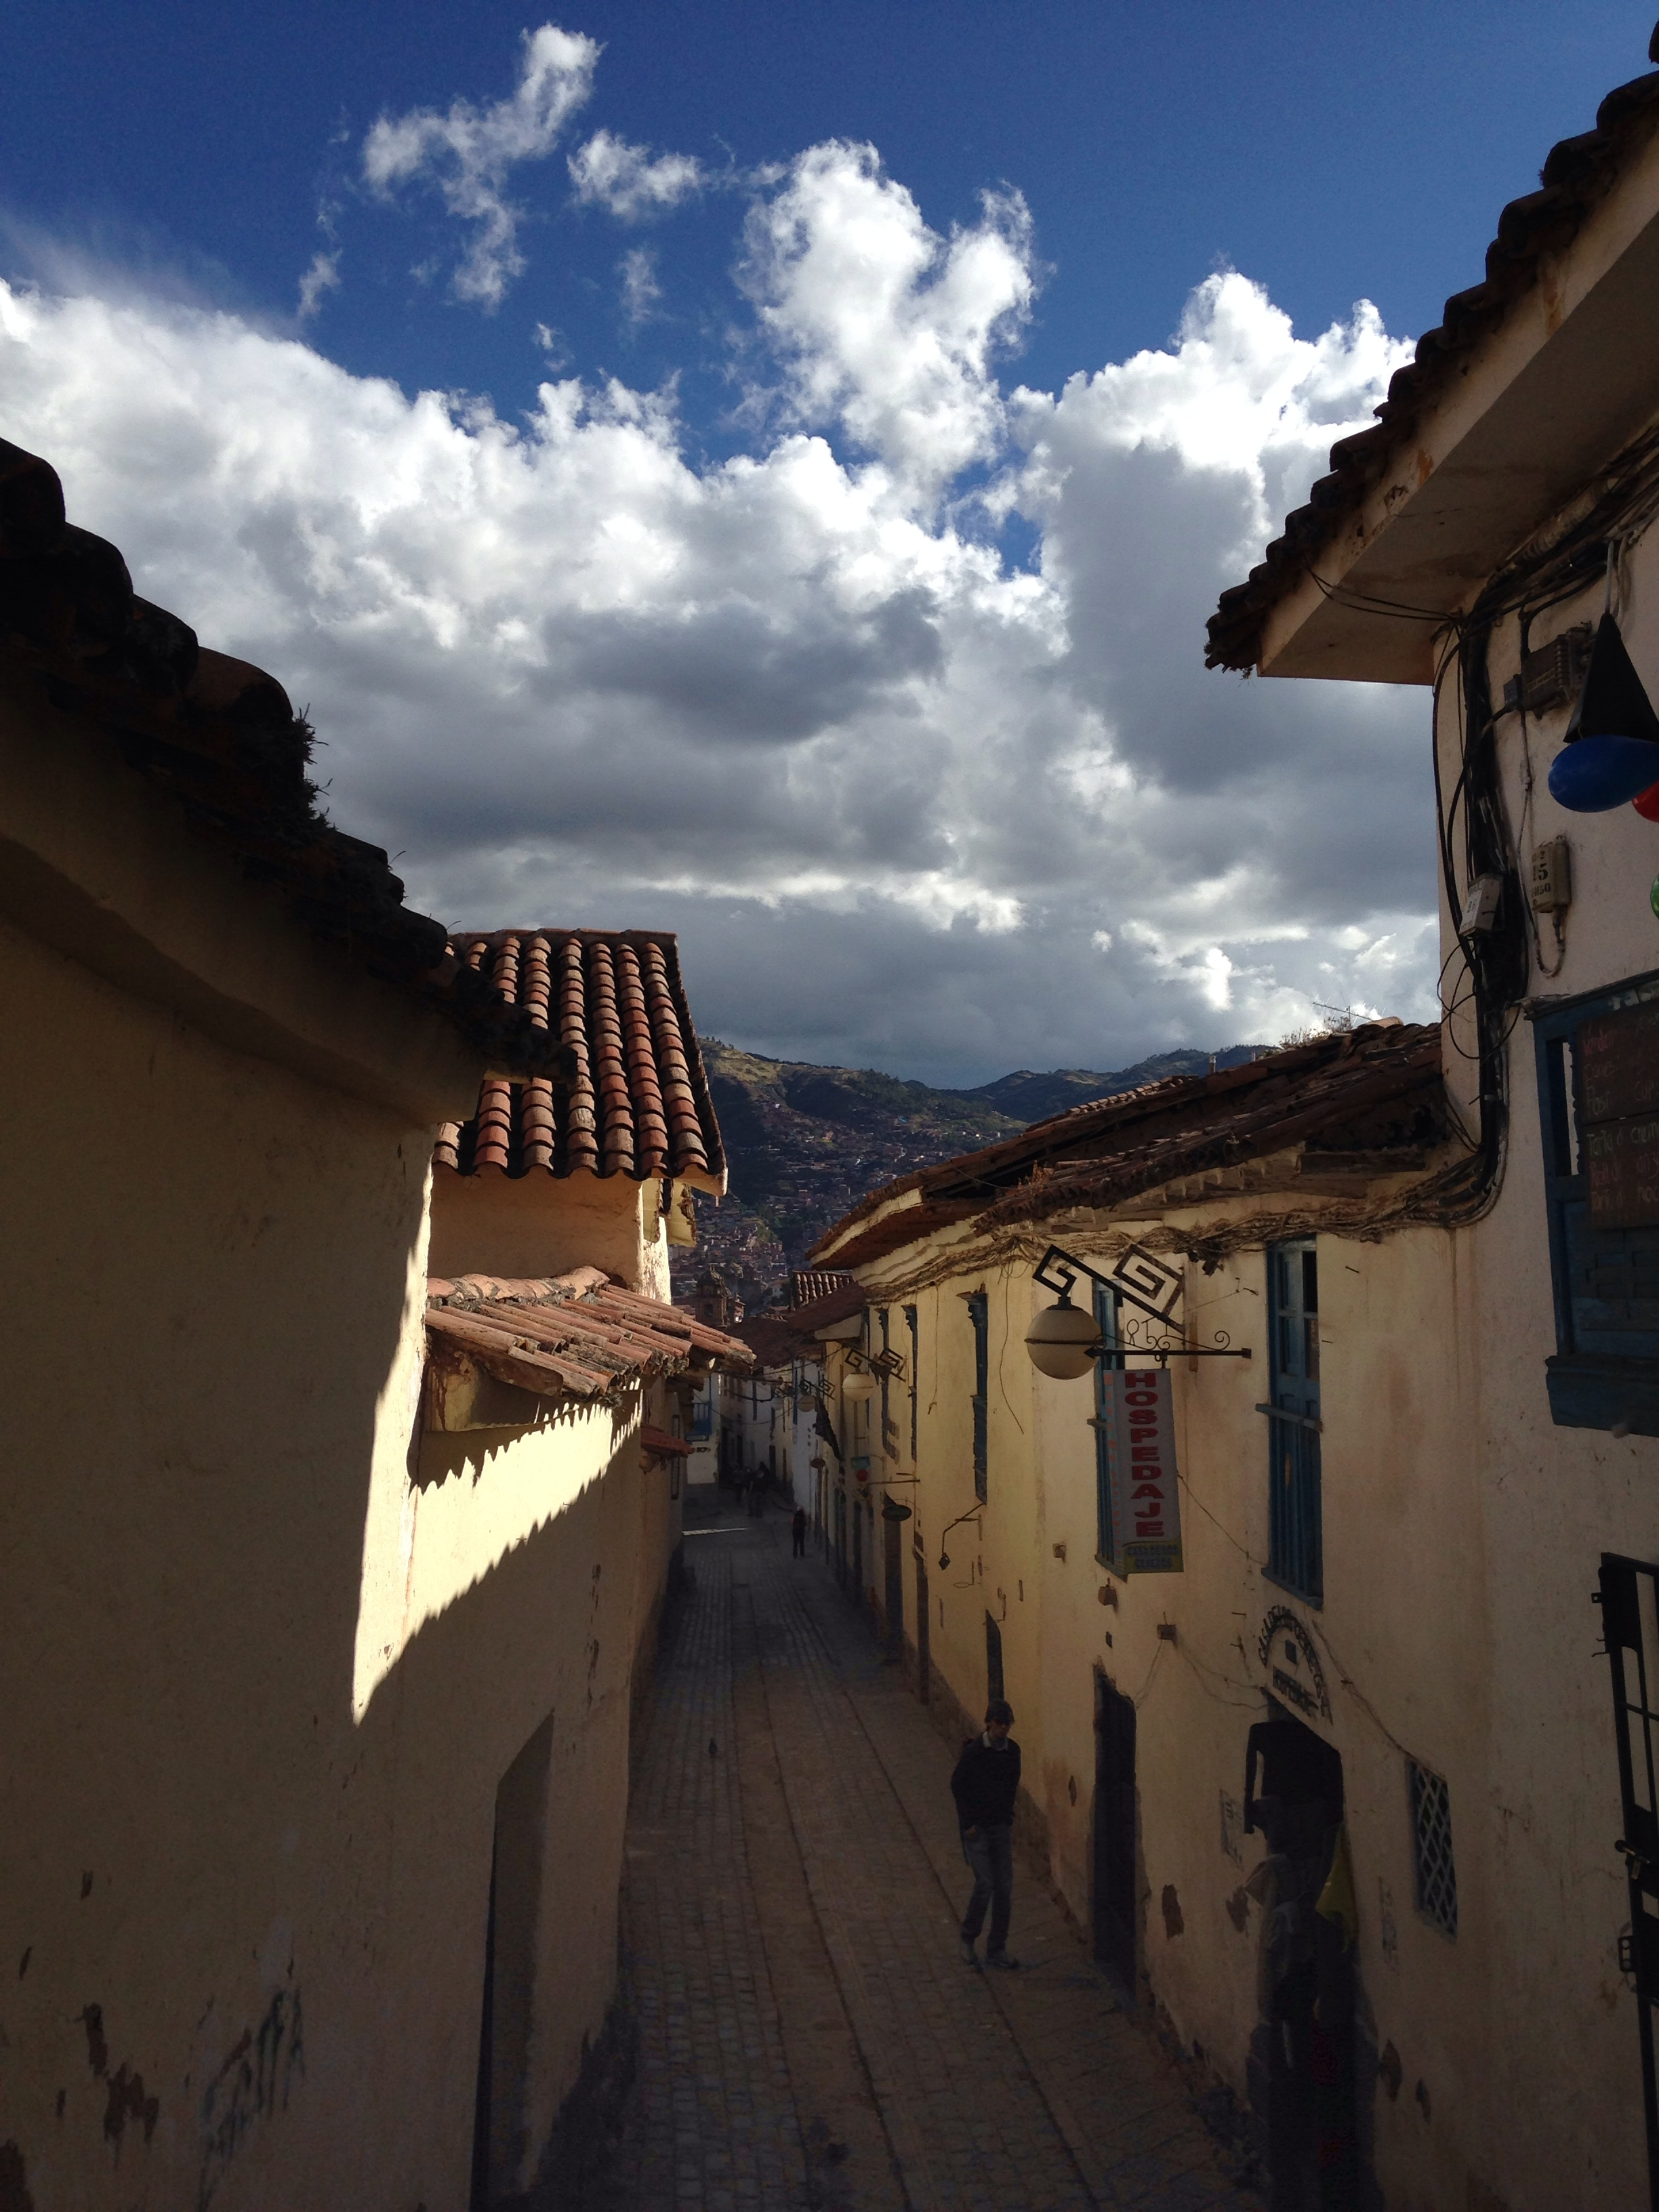 A street in Cusco